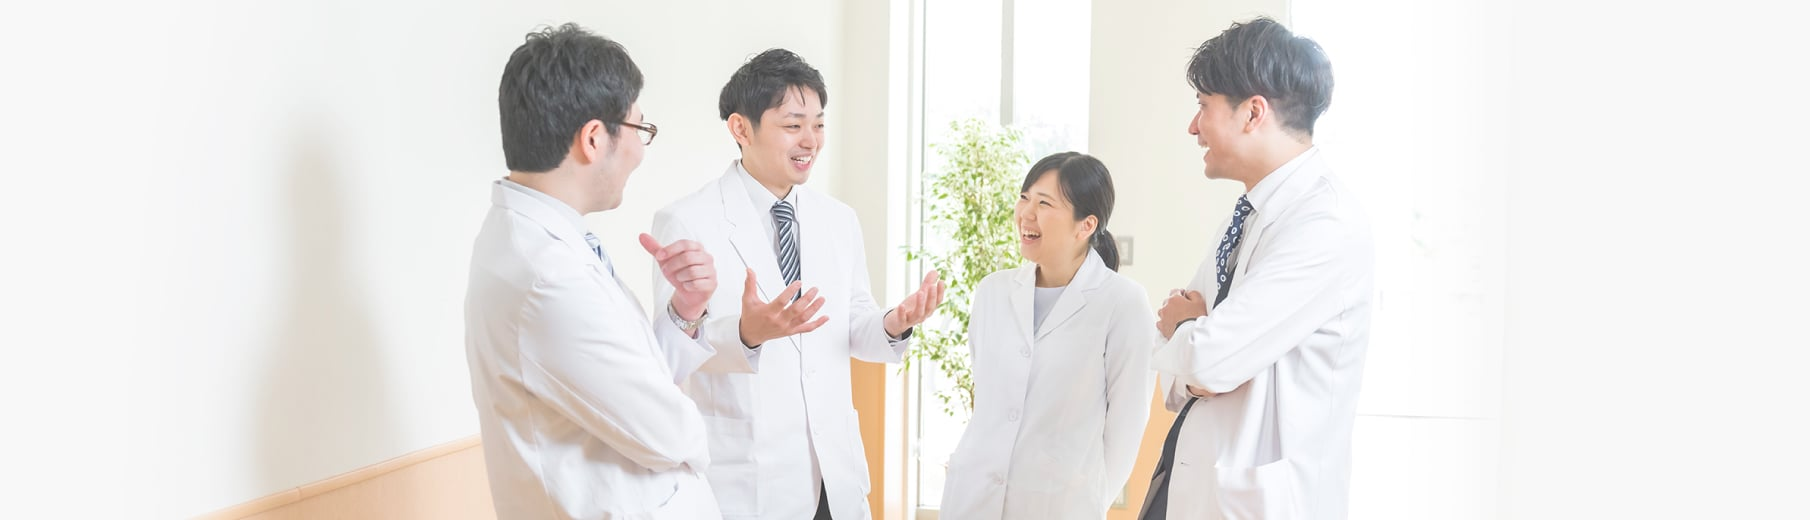 Belief Leading Japanese surgical medicine